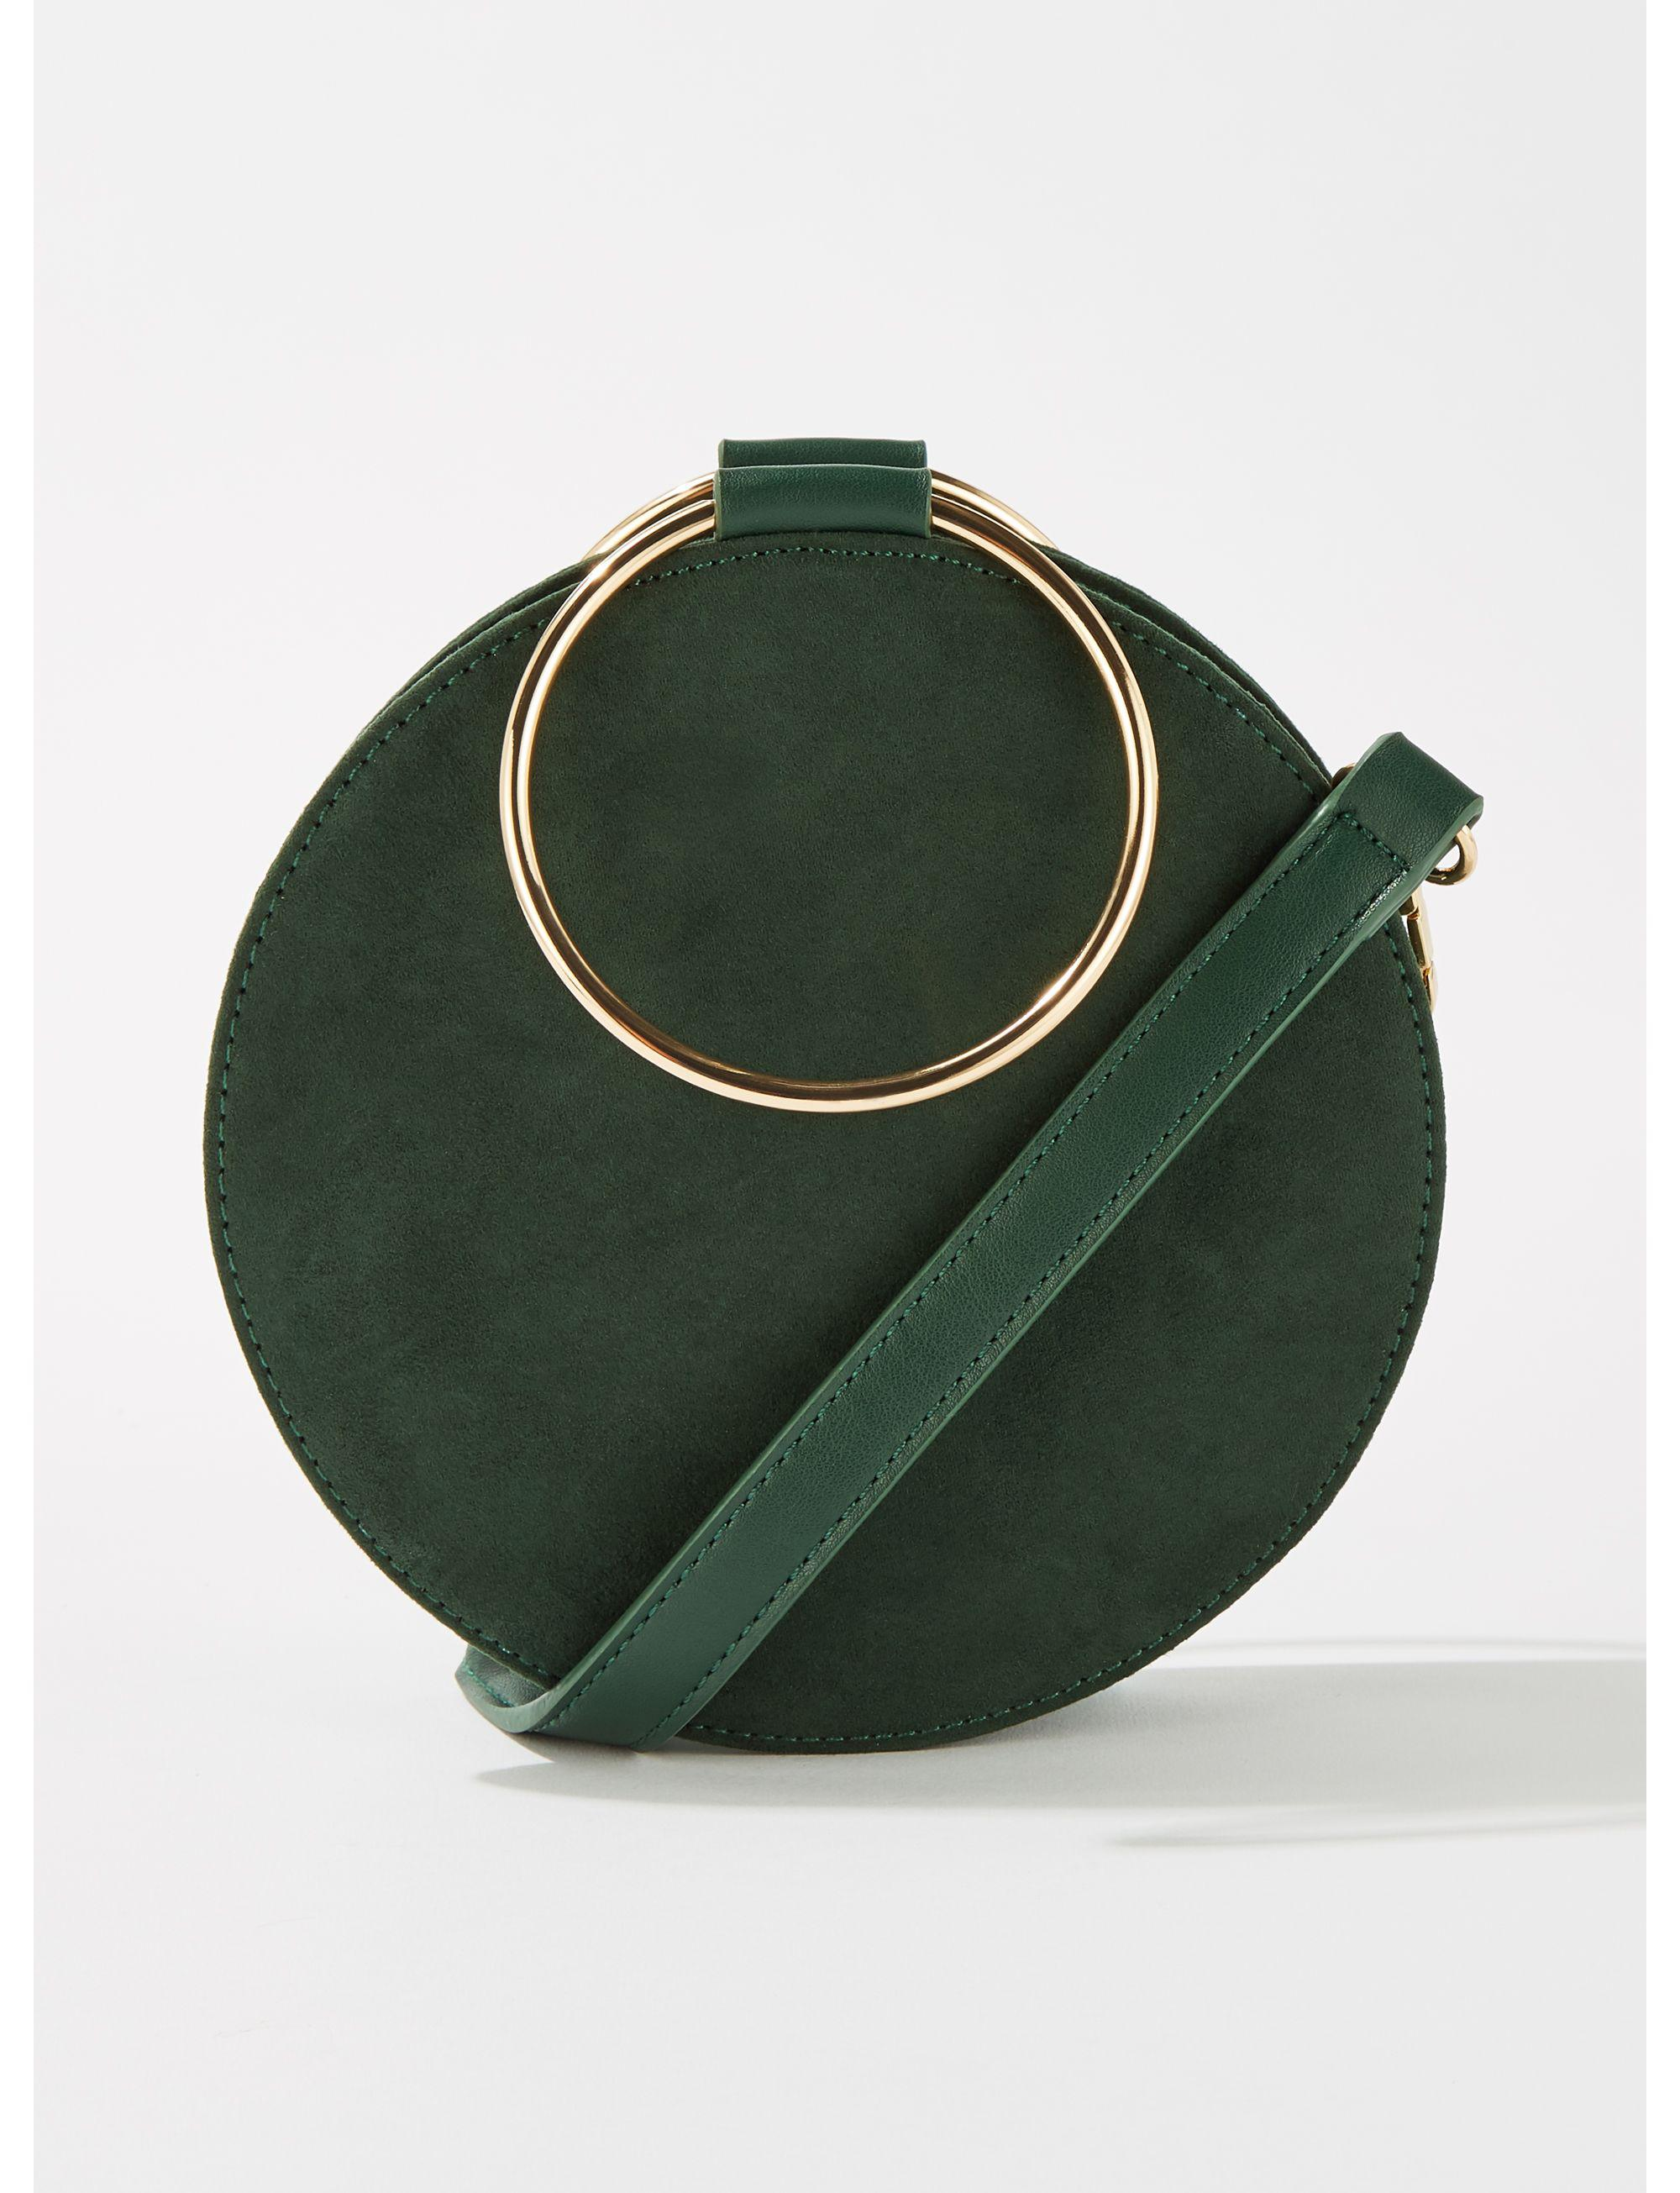 Miss Selfridge Metal Round Cross Over Bag in Green - Lyst faacbde9b3a43